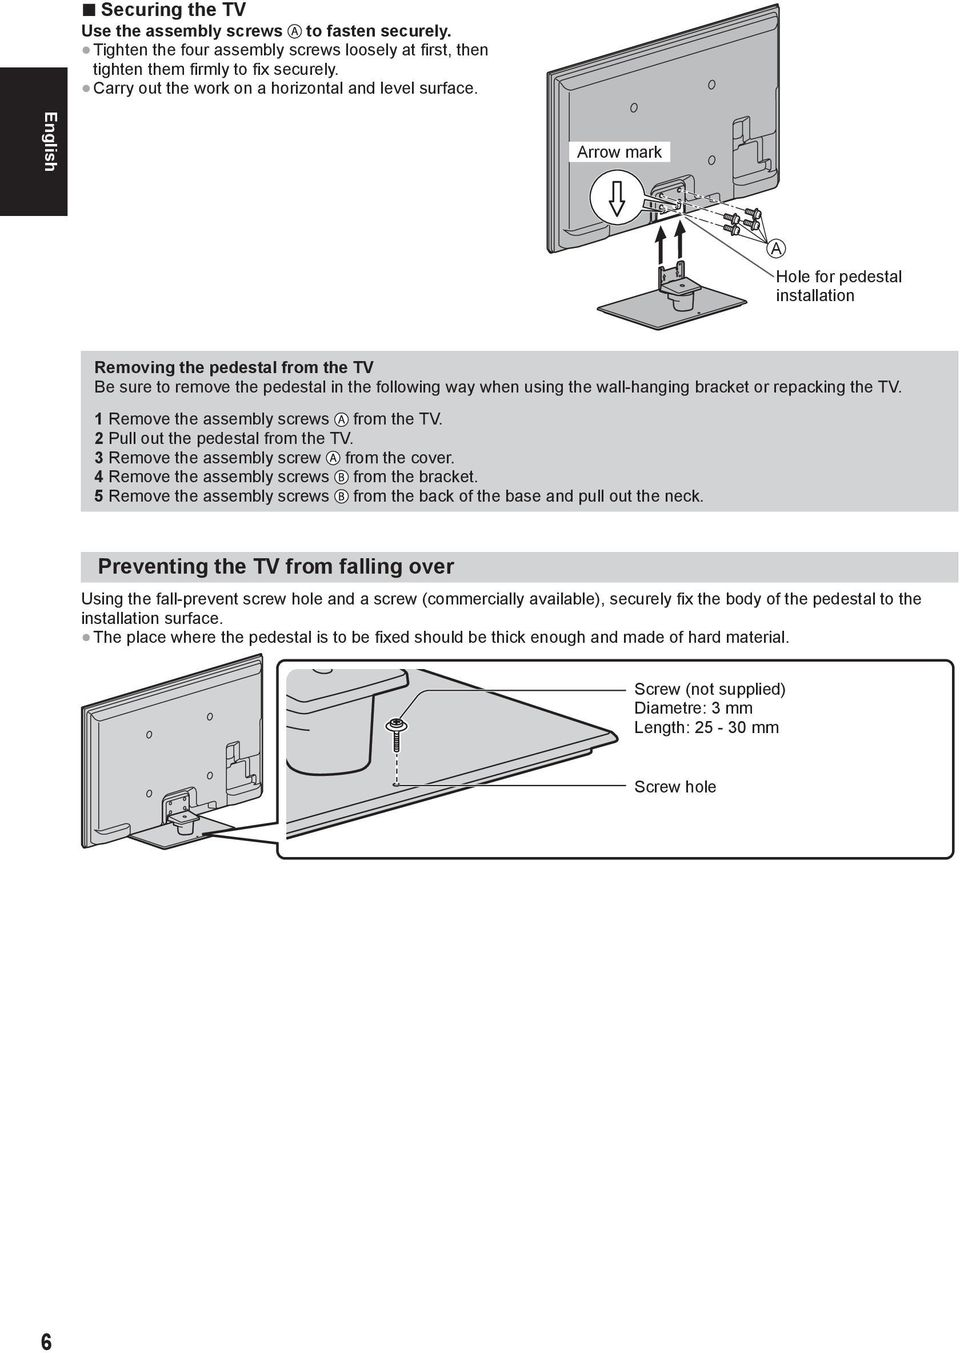 English Arrow mark A Hole for pedestal installation Removing the pedestal from the TV Be sure to remove the pedestal in the following way when using the wall-hanging bracket or repacking the TV.